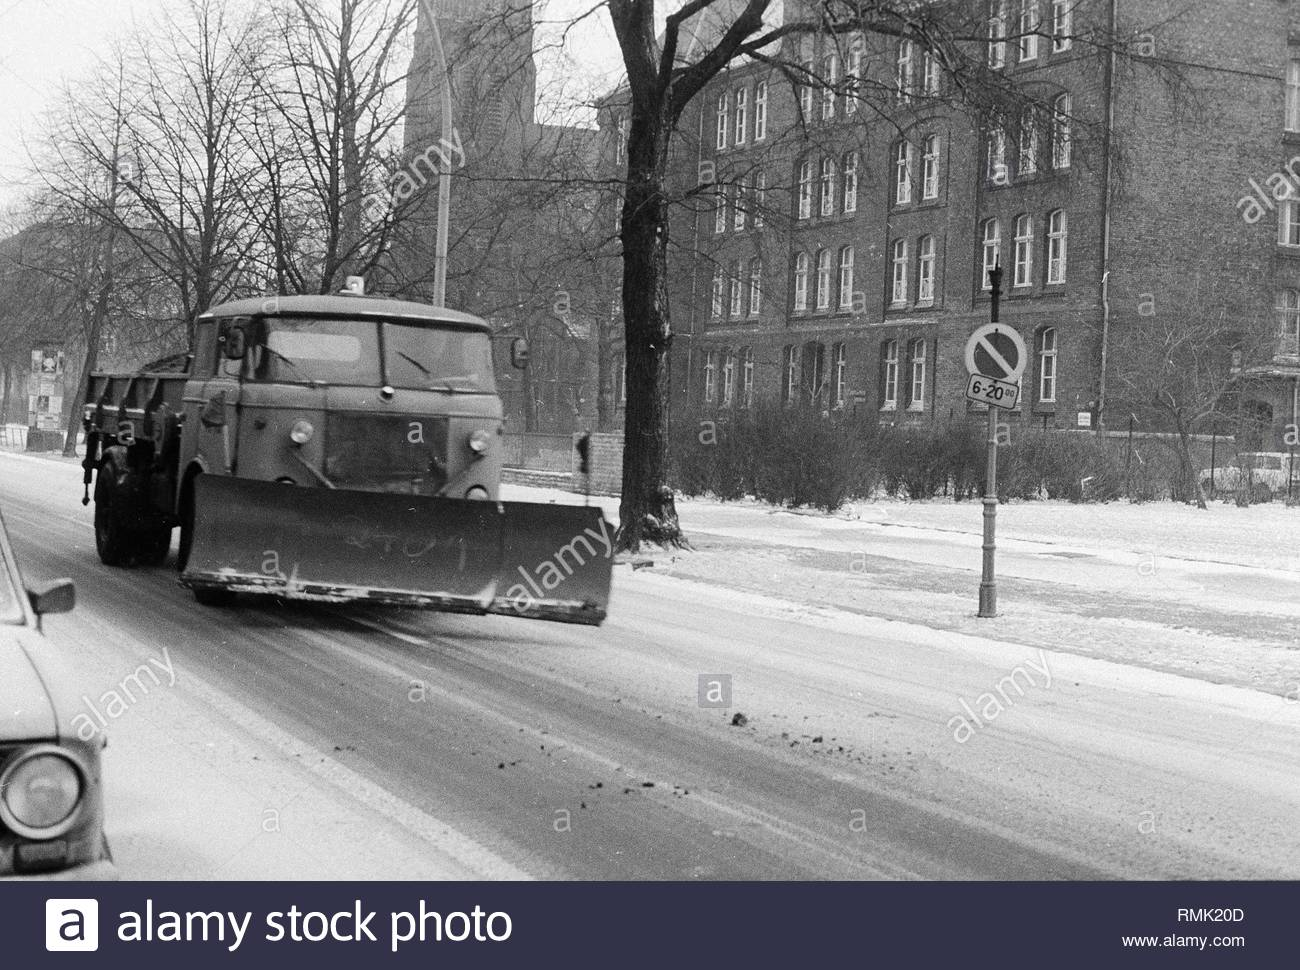 A removing vehicle / snowy racketeer in use application on the streets in Berlin, the former capital of the GDR, German democratic republic. Foto: Heinz Schönfeld - Stock Image